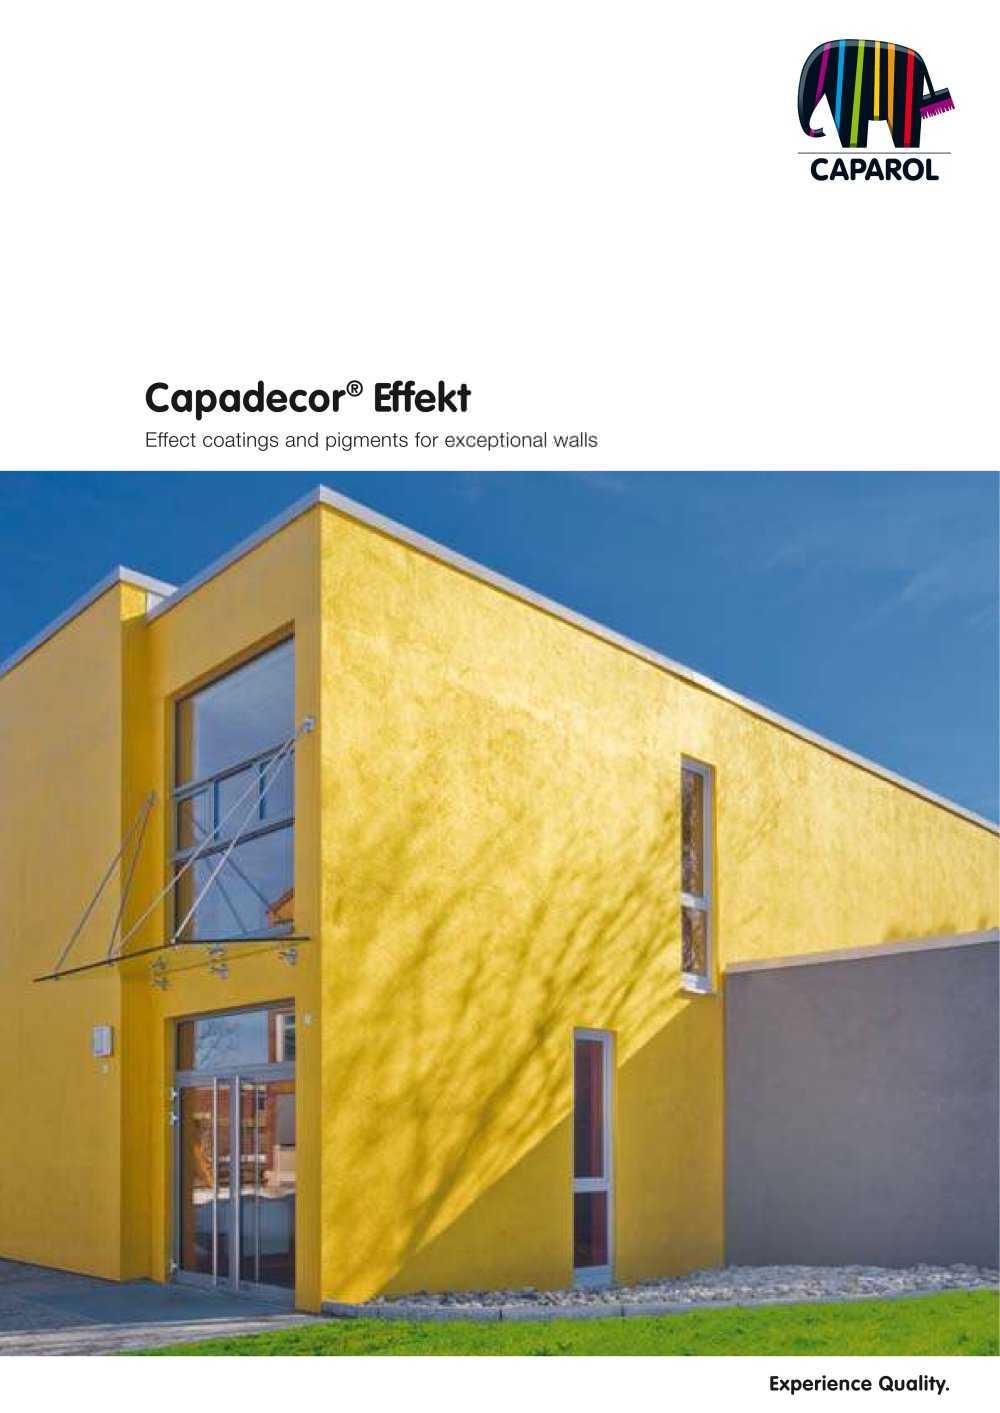 Brochure capadecor effekt   caparol   pdf catalogues ...